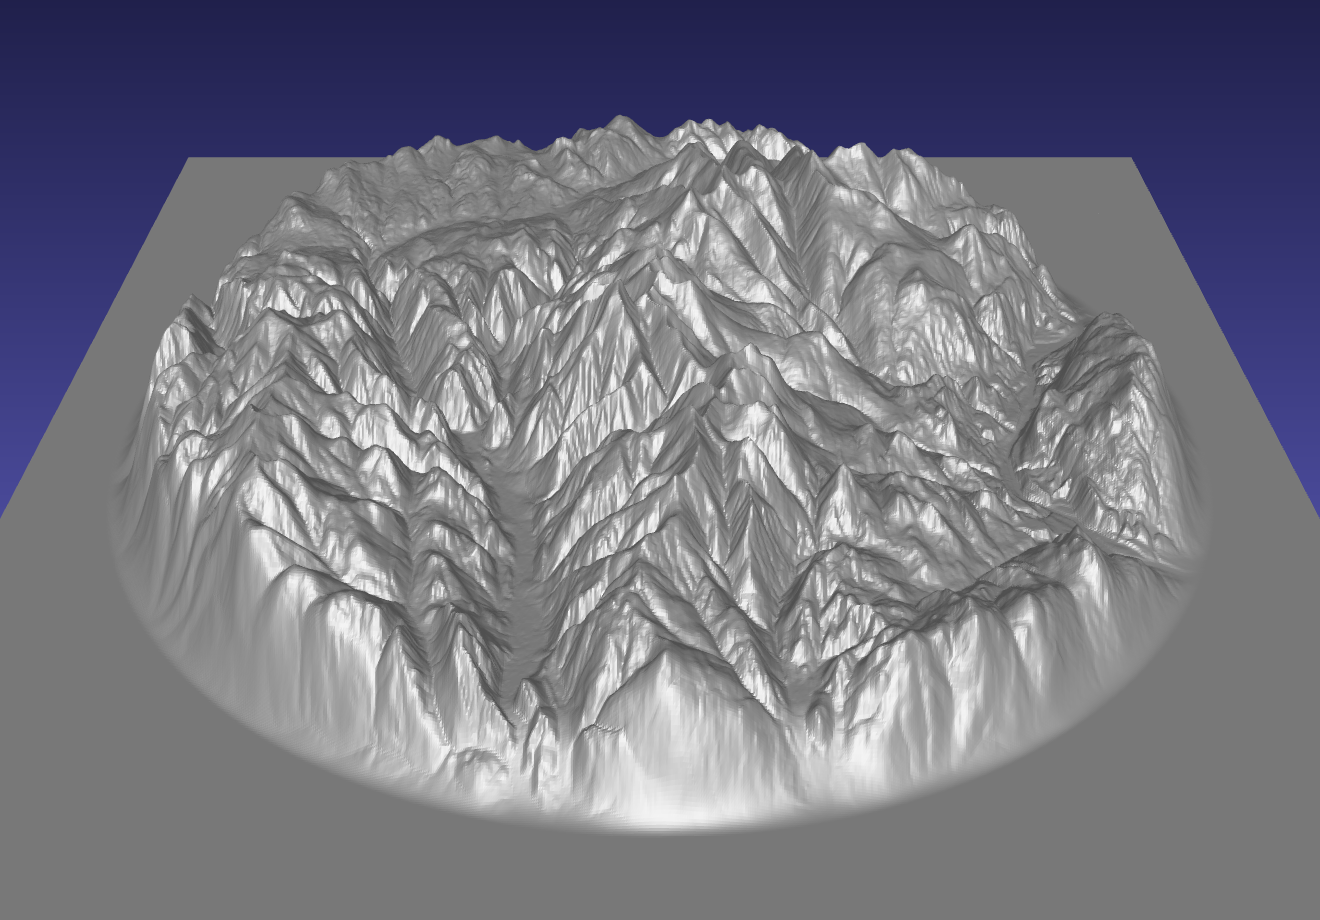 computer model used to carve a three-dimensional relief map of the mountains of the Rossland Range